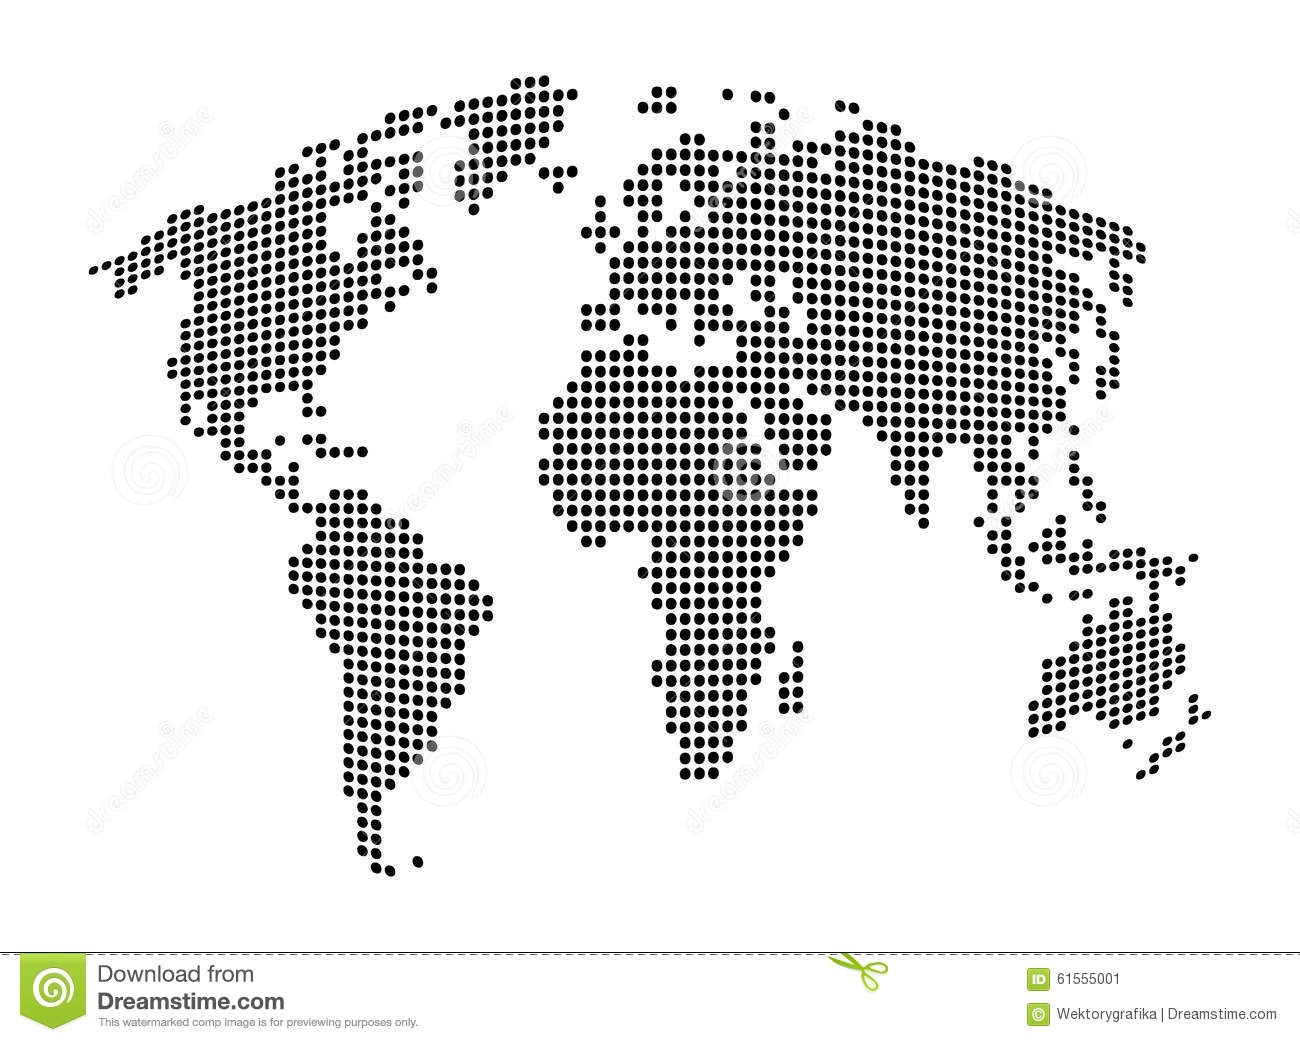 World map abstract dotted vector background black and white download world map abstract dotted vector background black and white silhouette illustration stock vector gumiabroncs Gallery